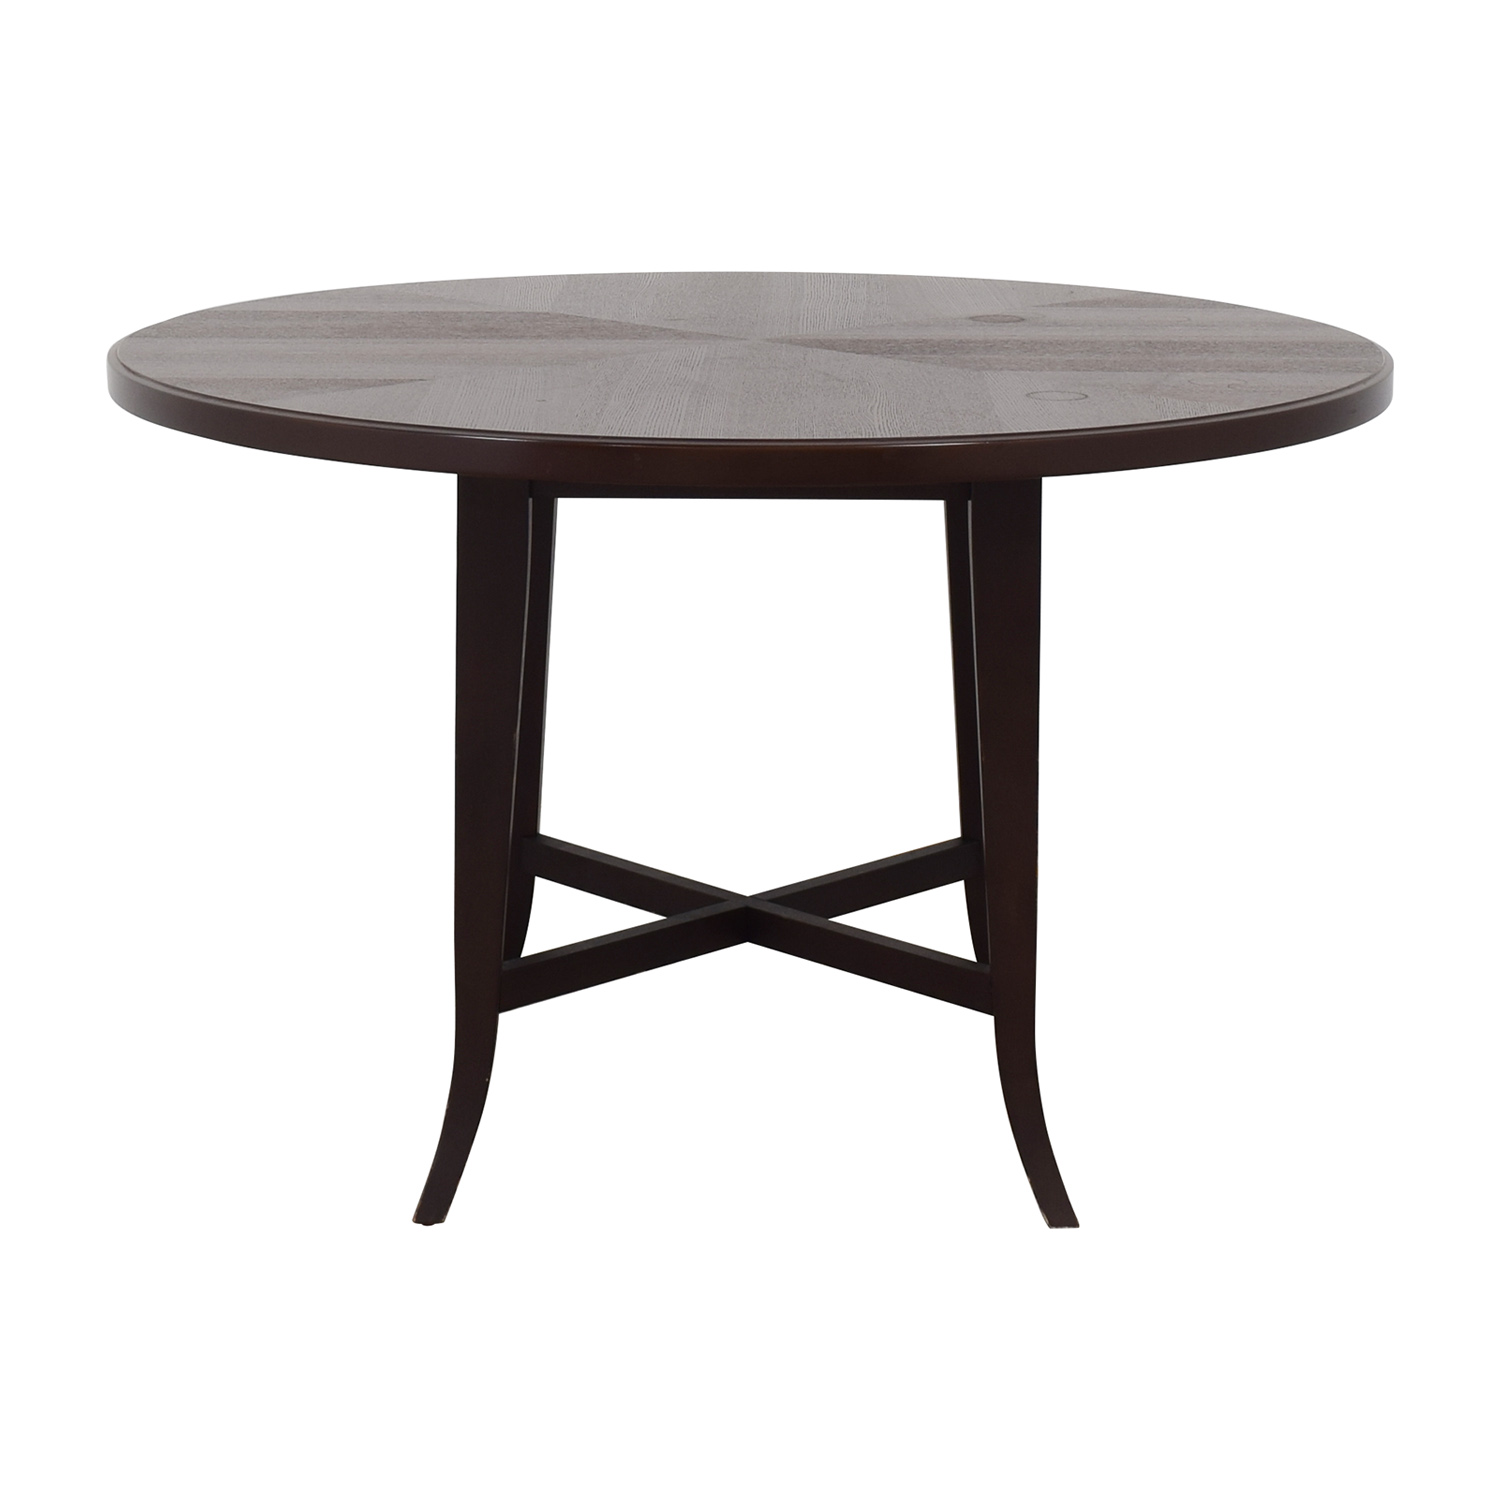 Crate & Barrel Crate & Barrel Round Dining Table ct